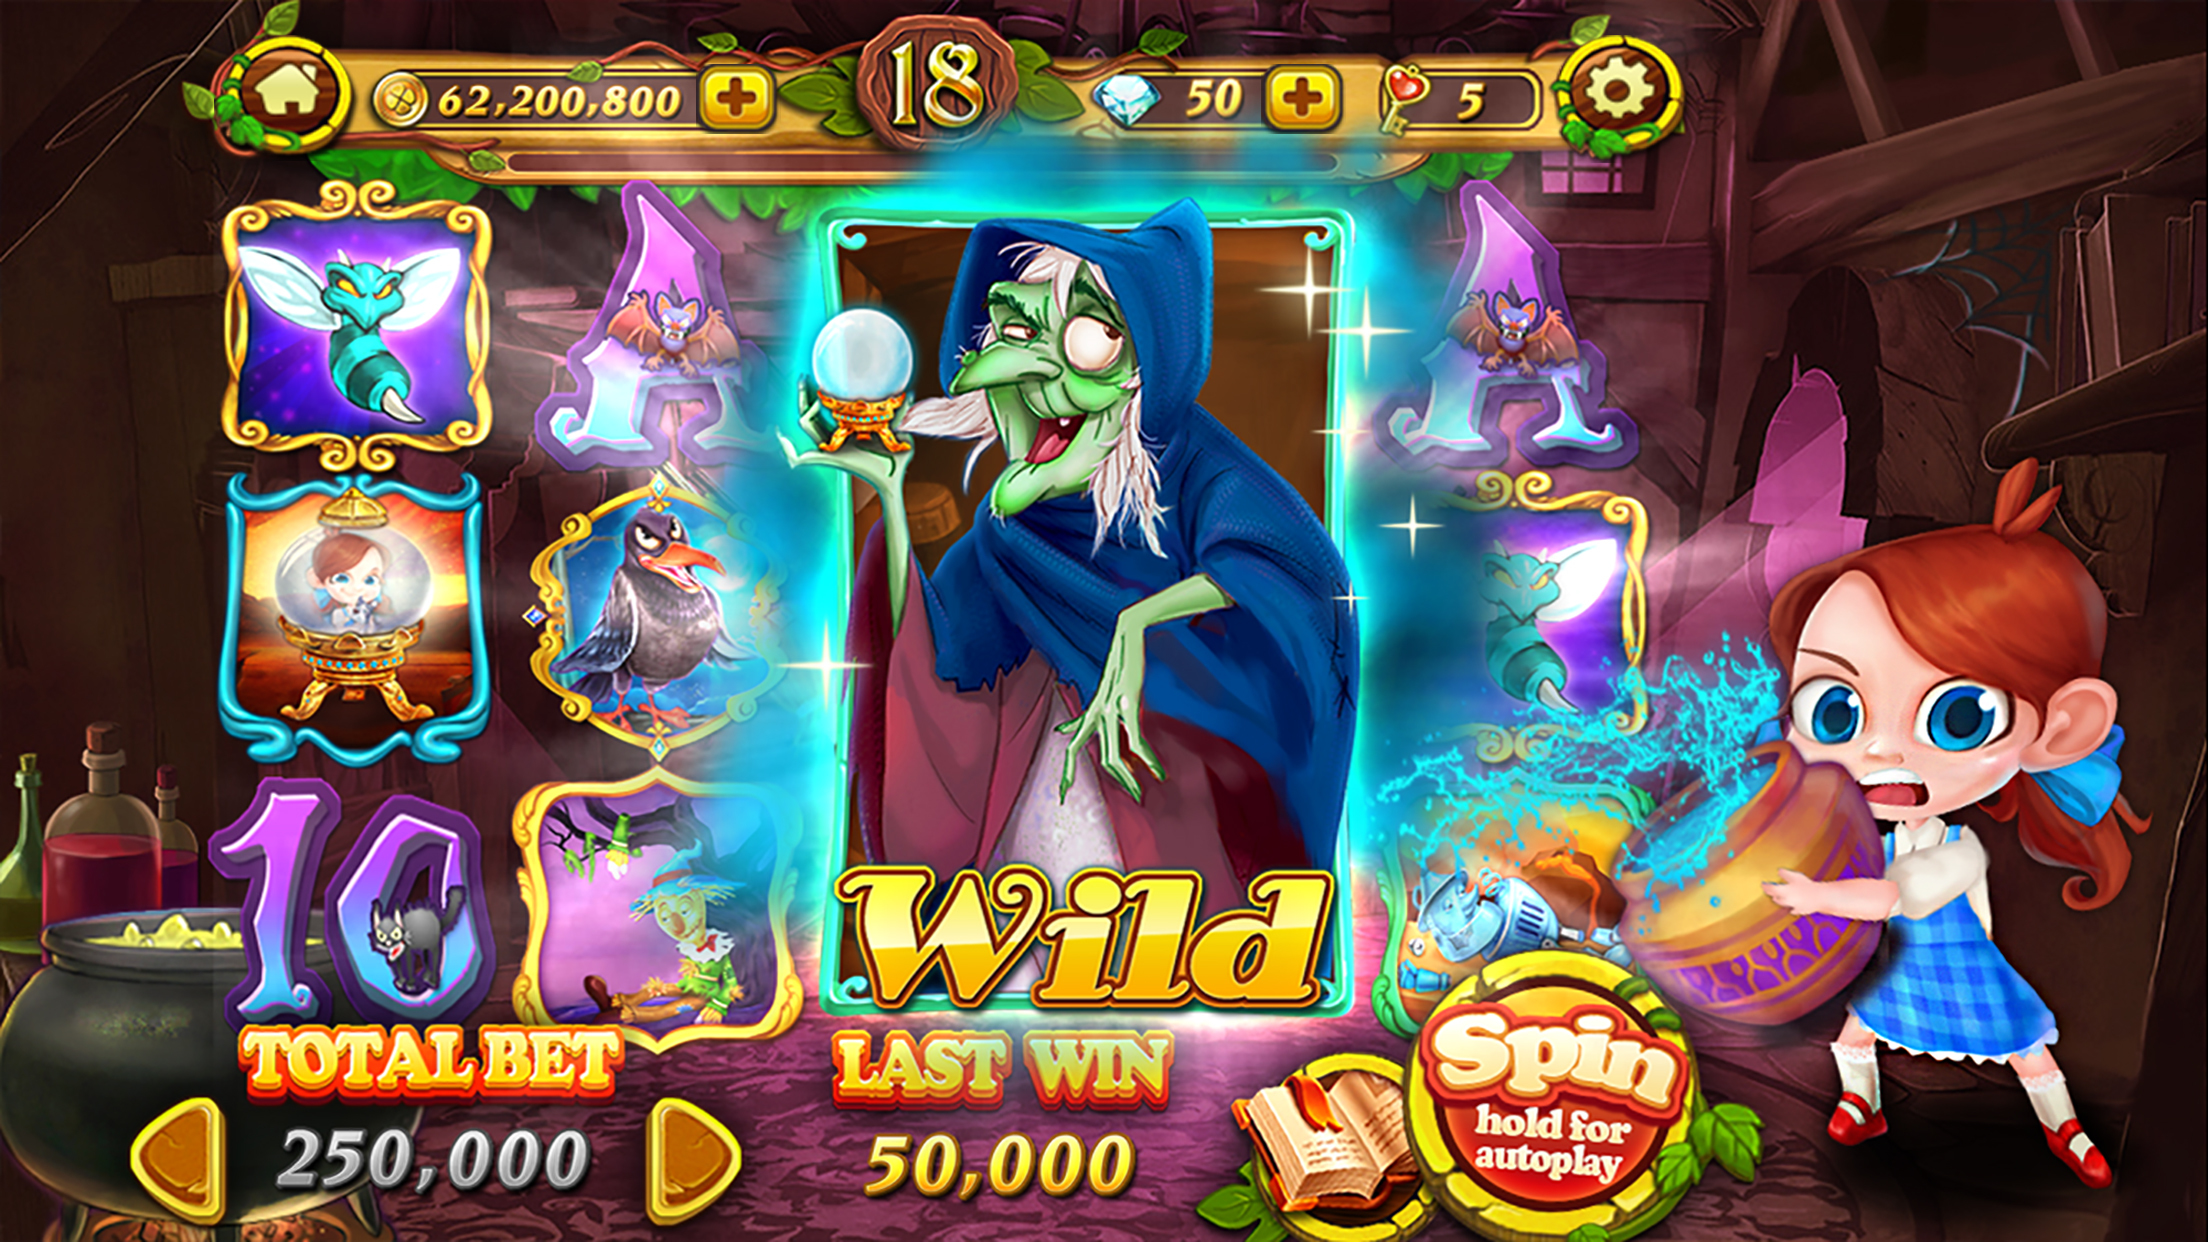 Slots in Wonderland - Las Vegas Free Slots Machines Screenshot